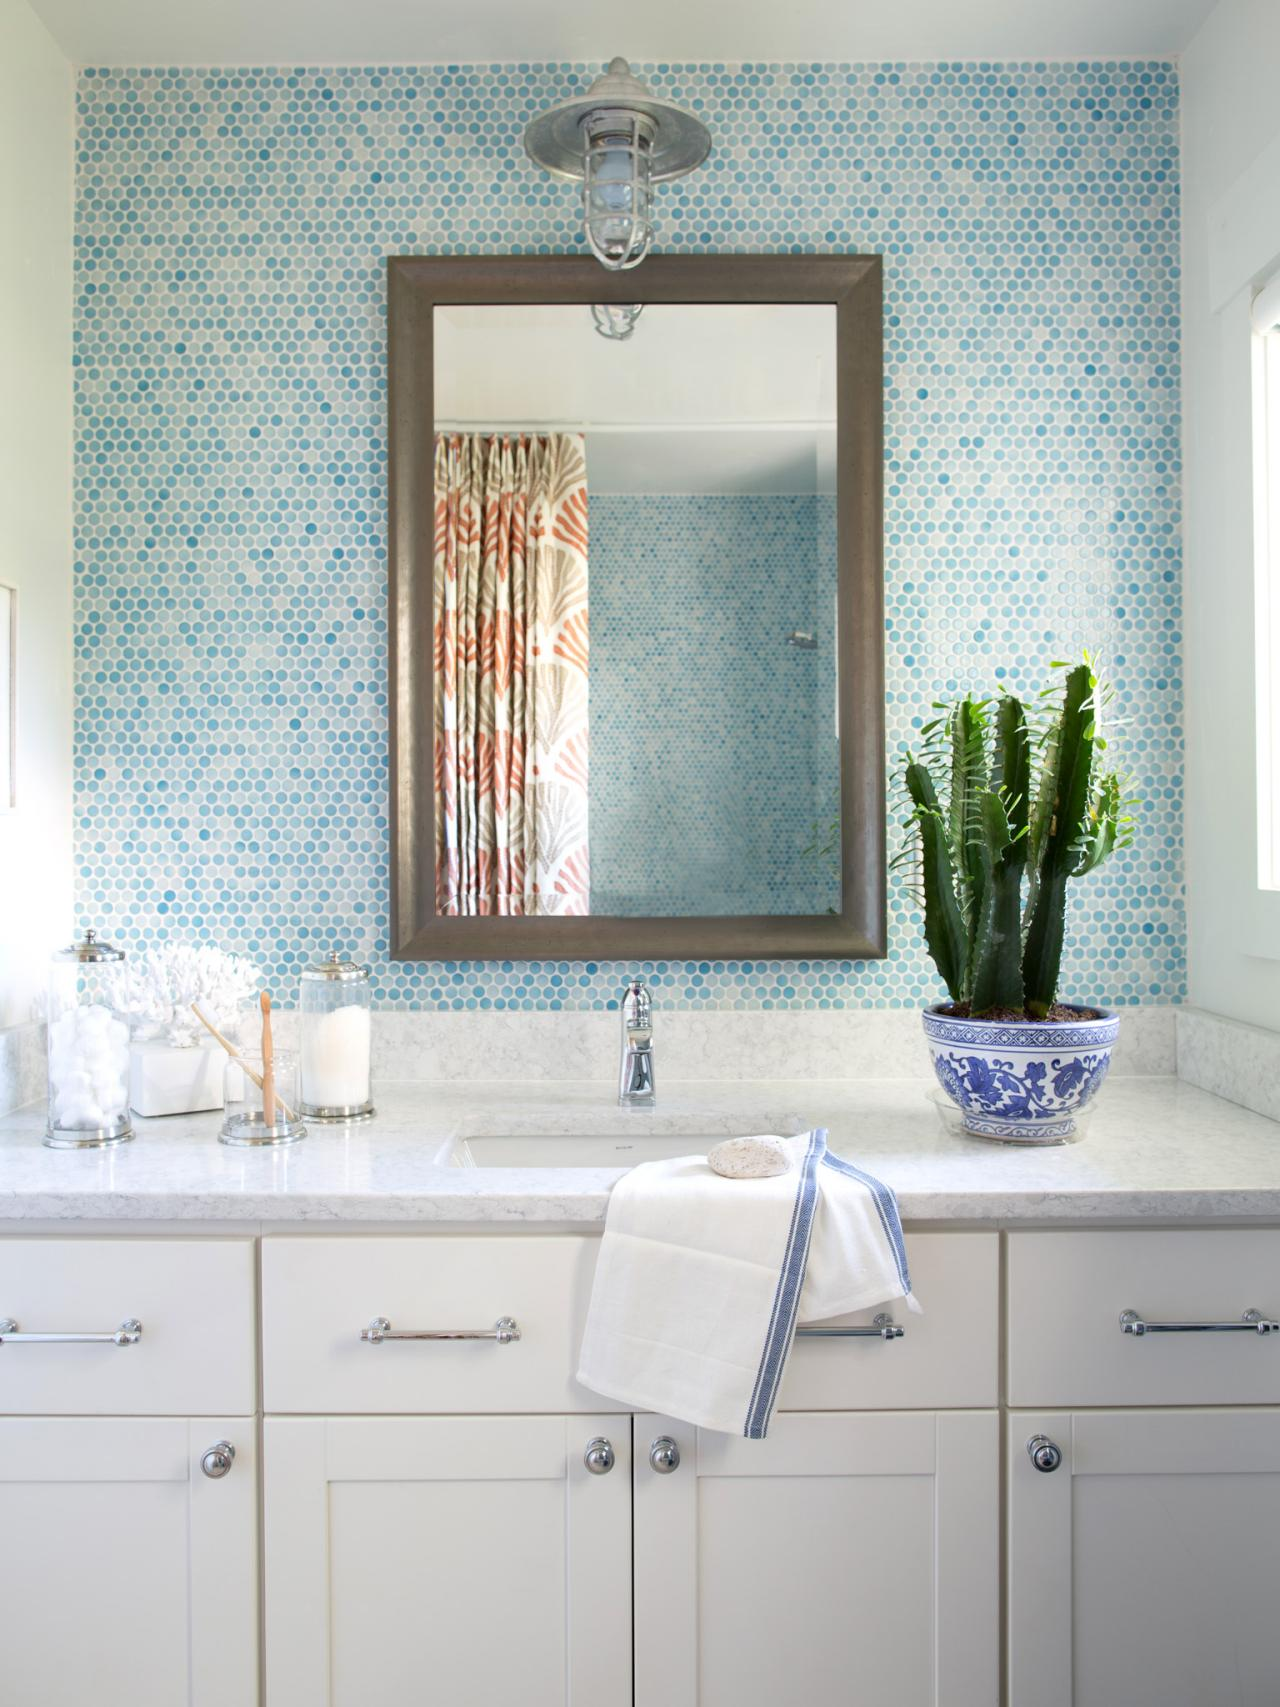 Having fun with a wall of accent tile in a bathroom brings so much style to your home.